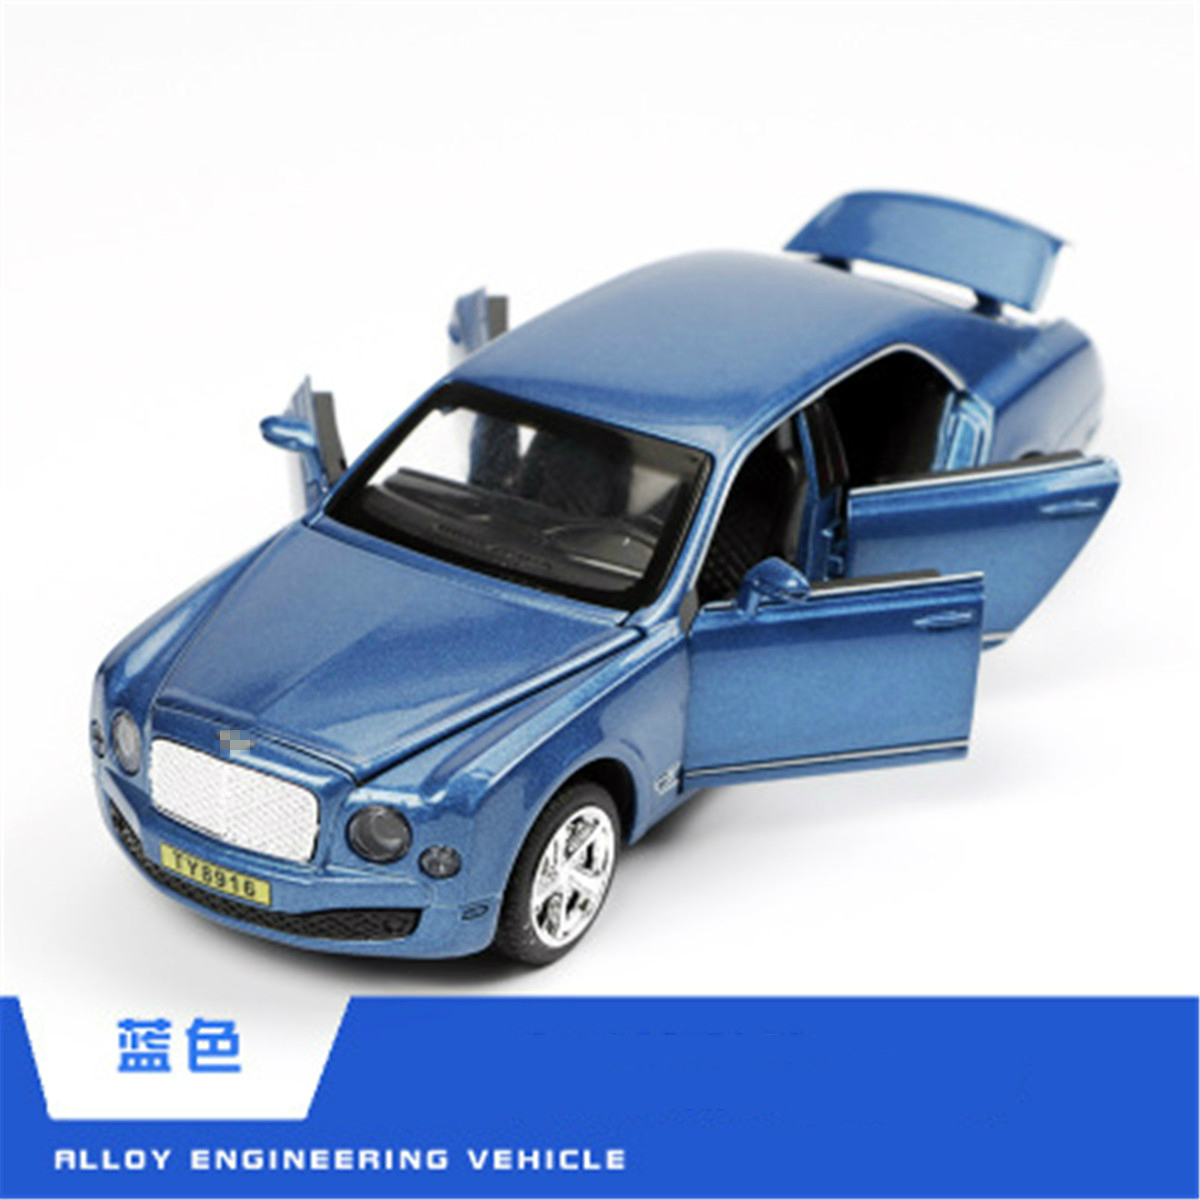 High Simulation Exquisite 1:32 Diecasts Toy Vehicles Car Styling Bentleys 1:32 Alloy Diecast Toy Model Legoed Friends For Kids